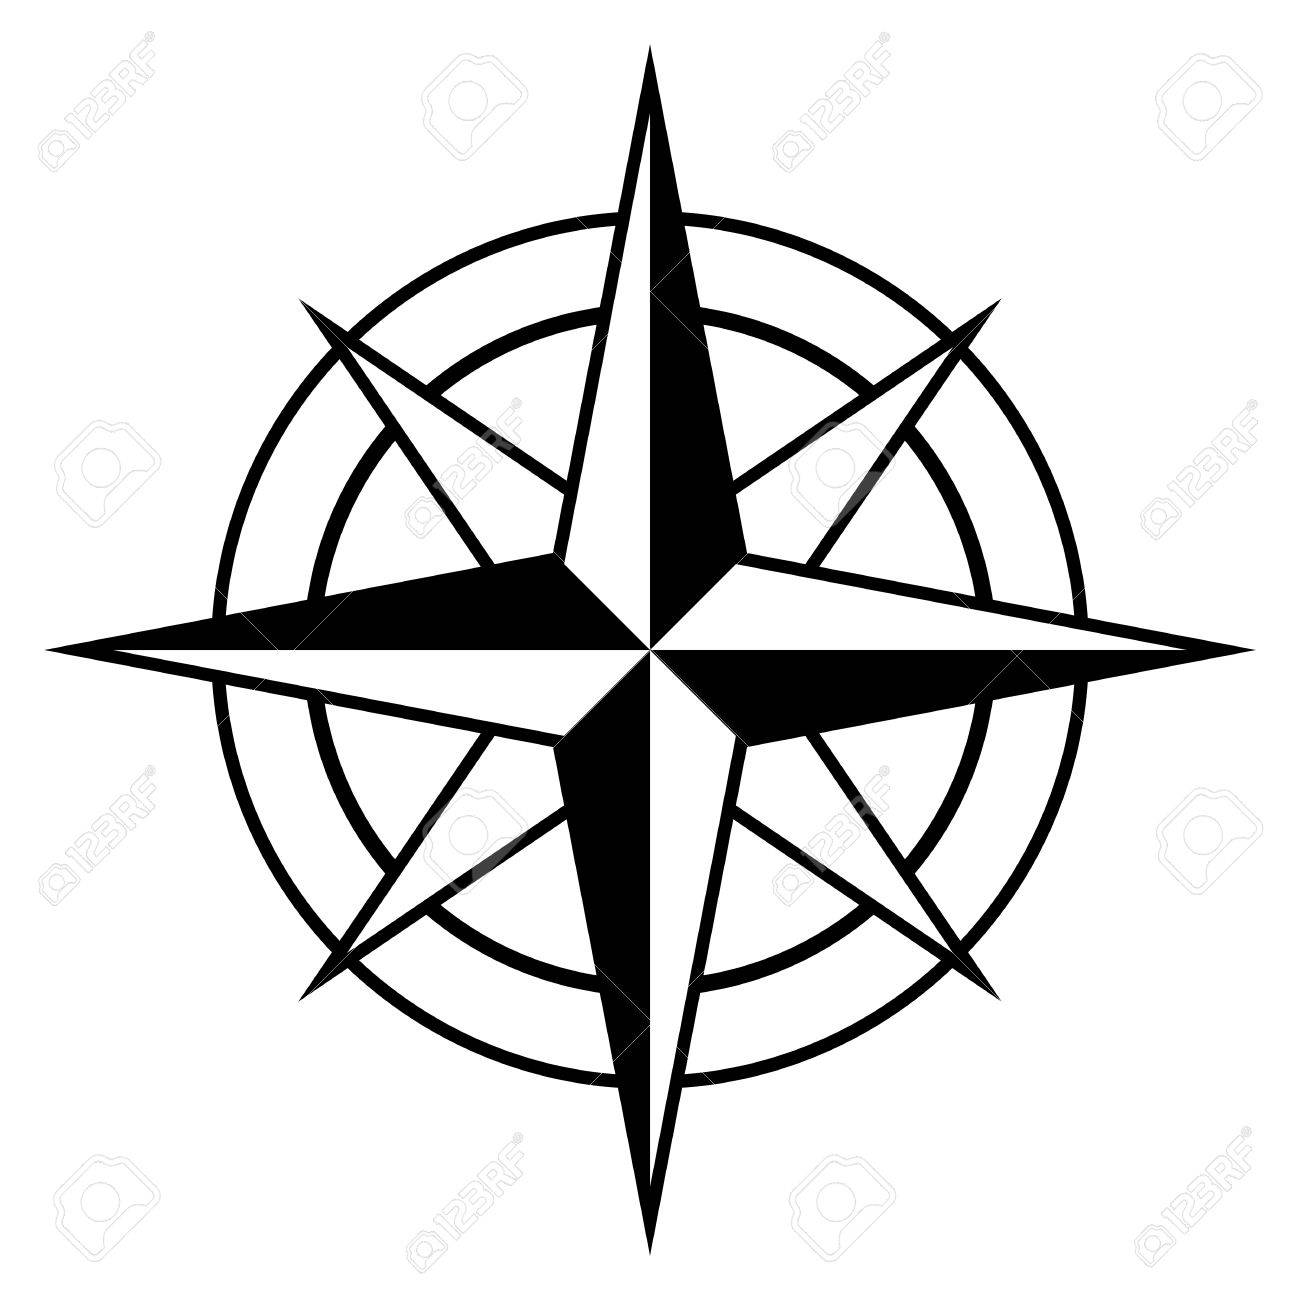 Antique style compass rose icon in black and white for marine...